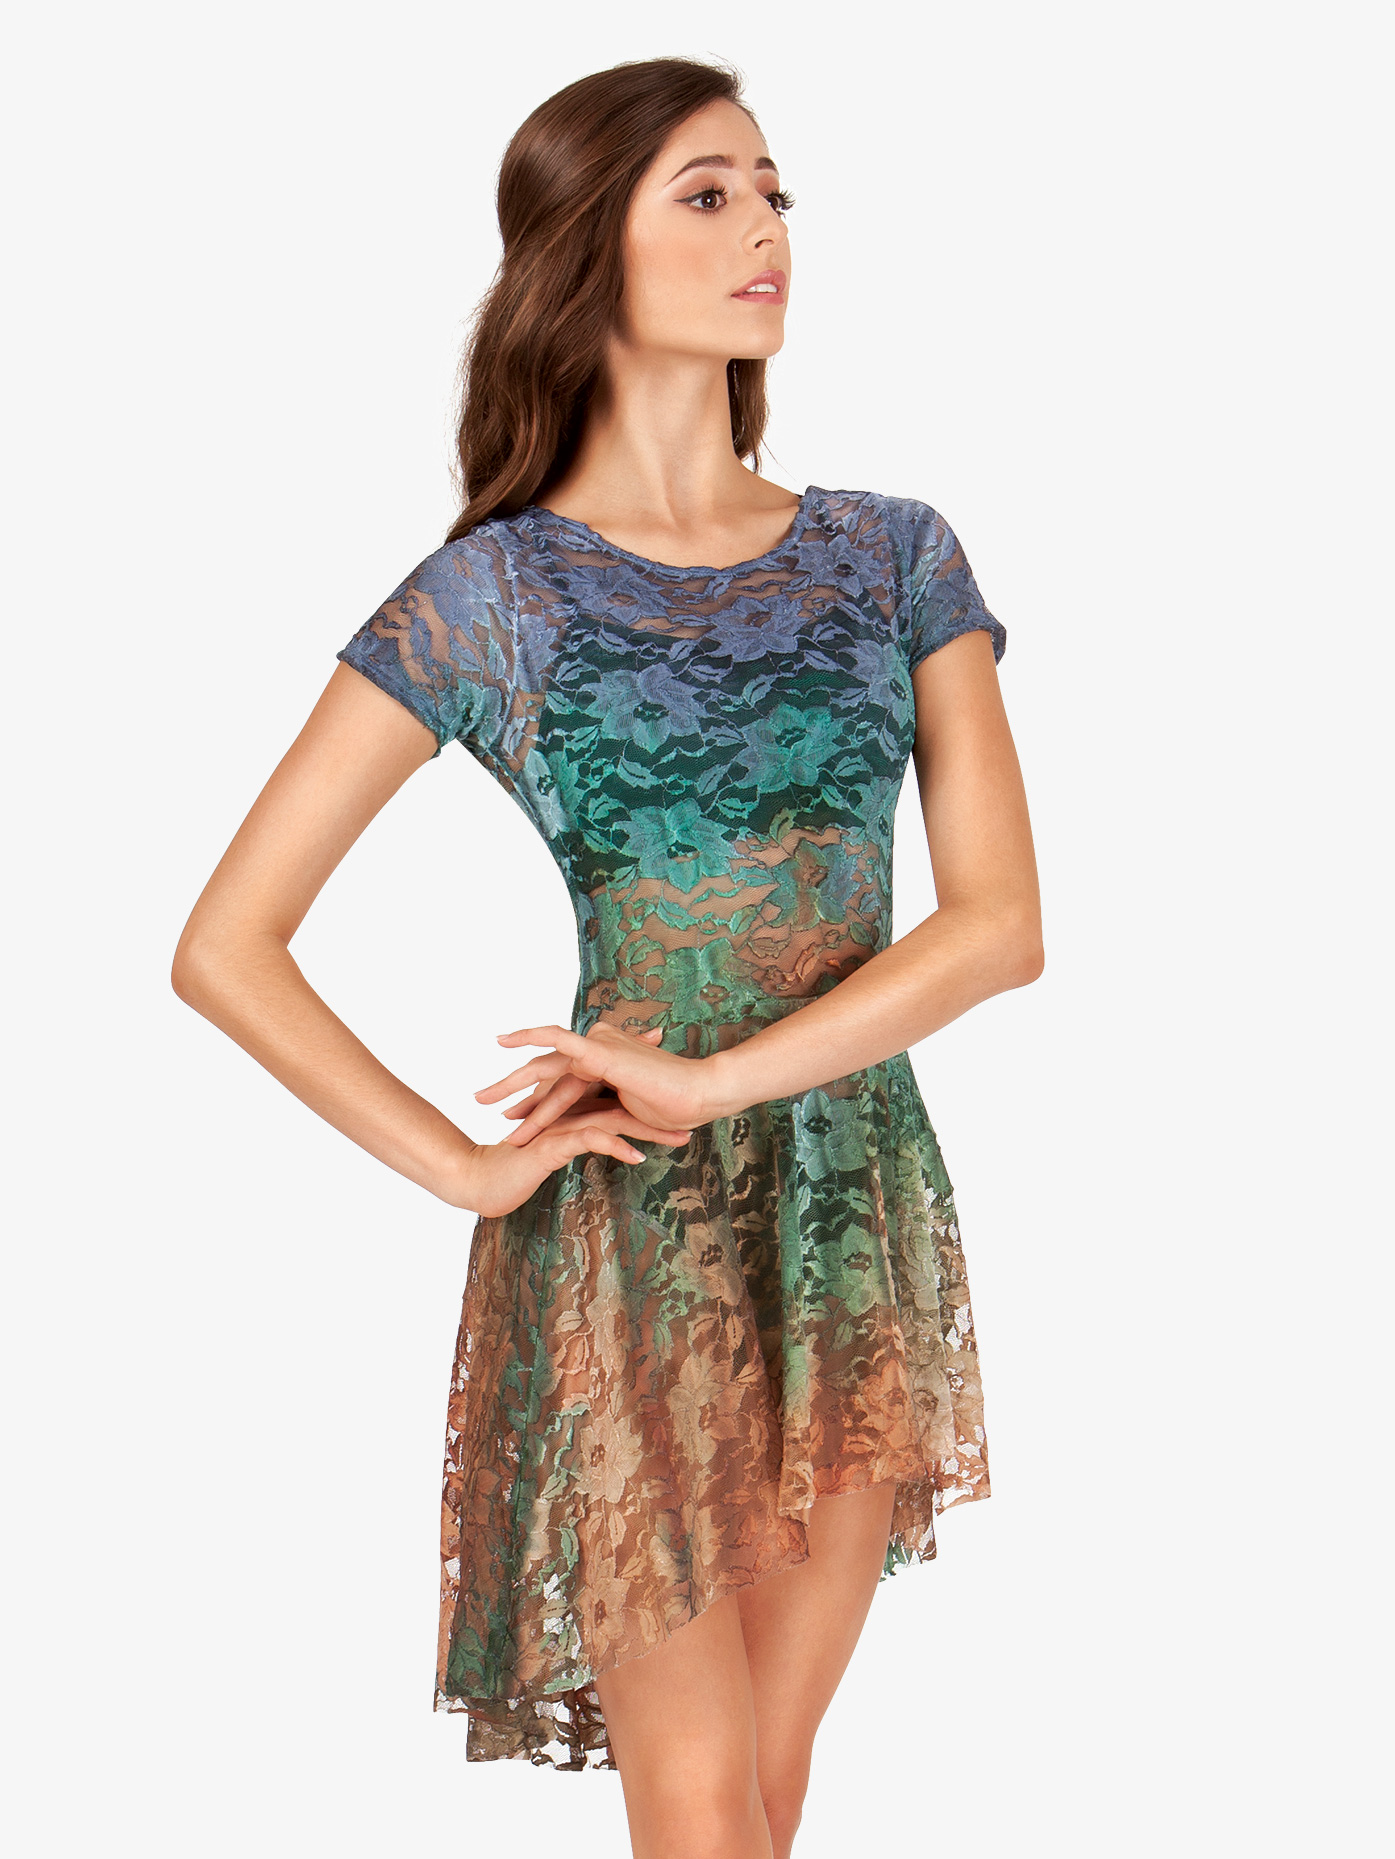 Watercolour Adult Lace Cap Sleeve Dress WC208